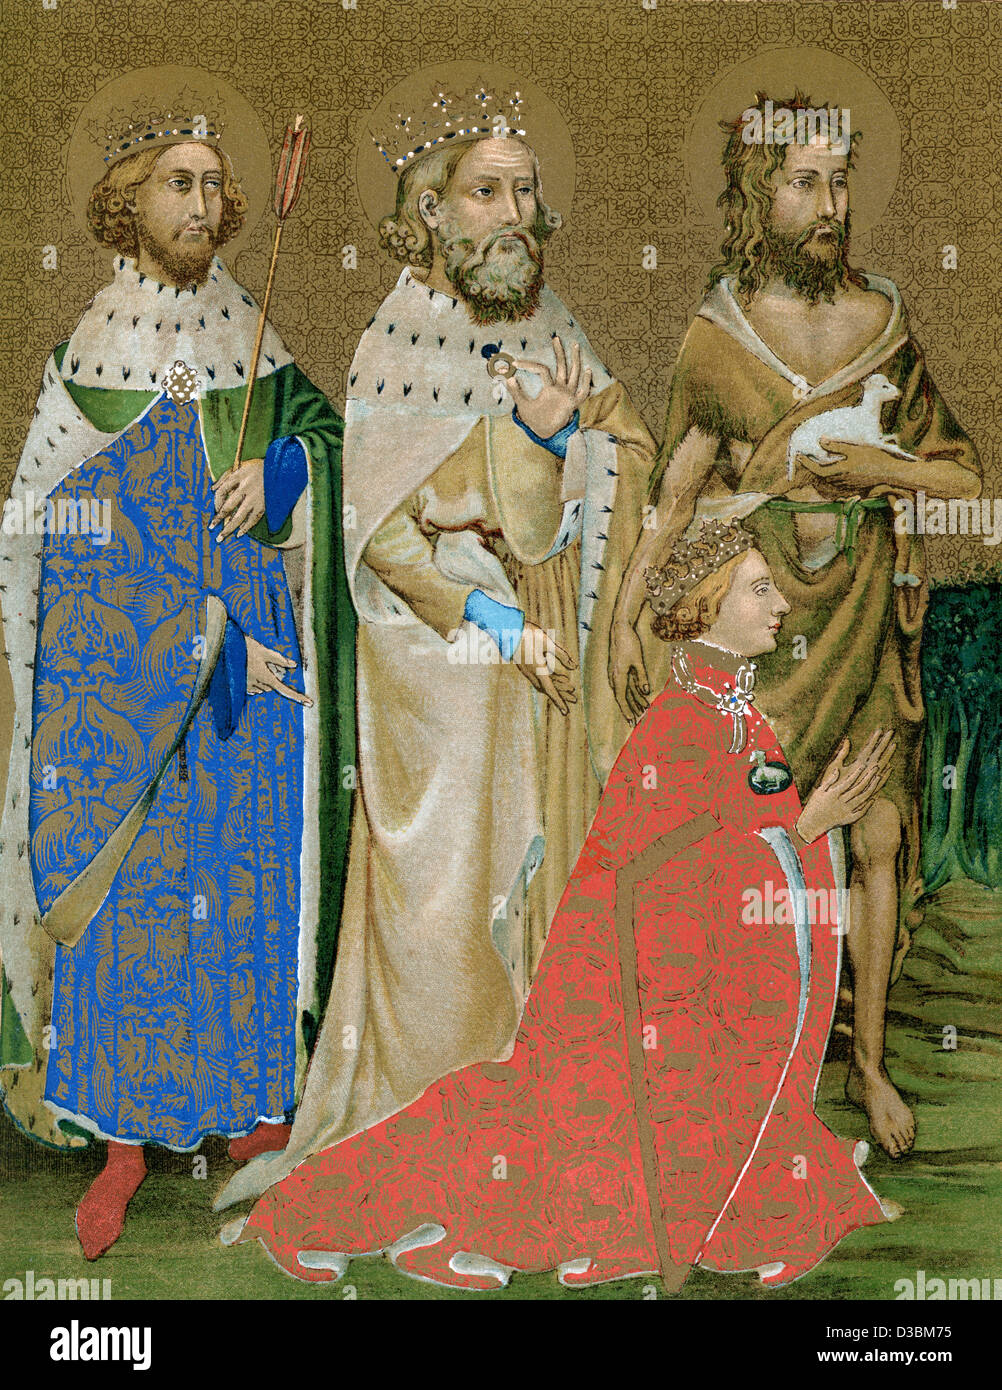 King Richard II of England and his Patron Saints, John the Baptist, Edward the Confessor and Edmund the Martyr. - Stock Image